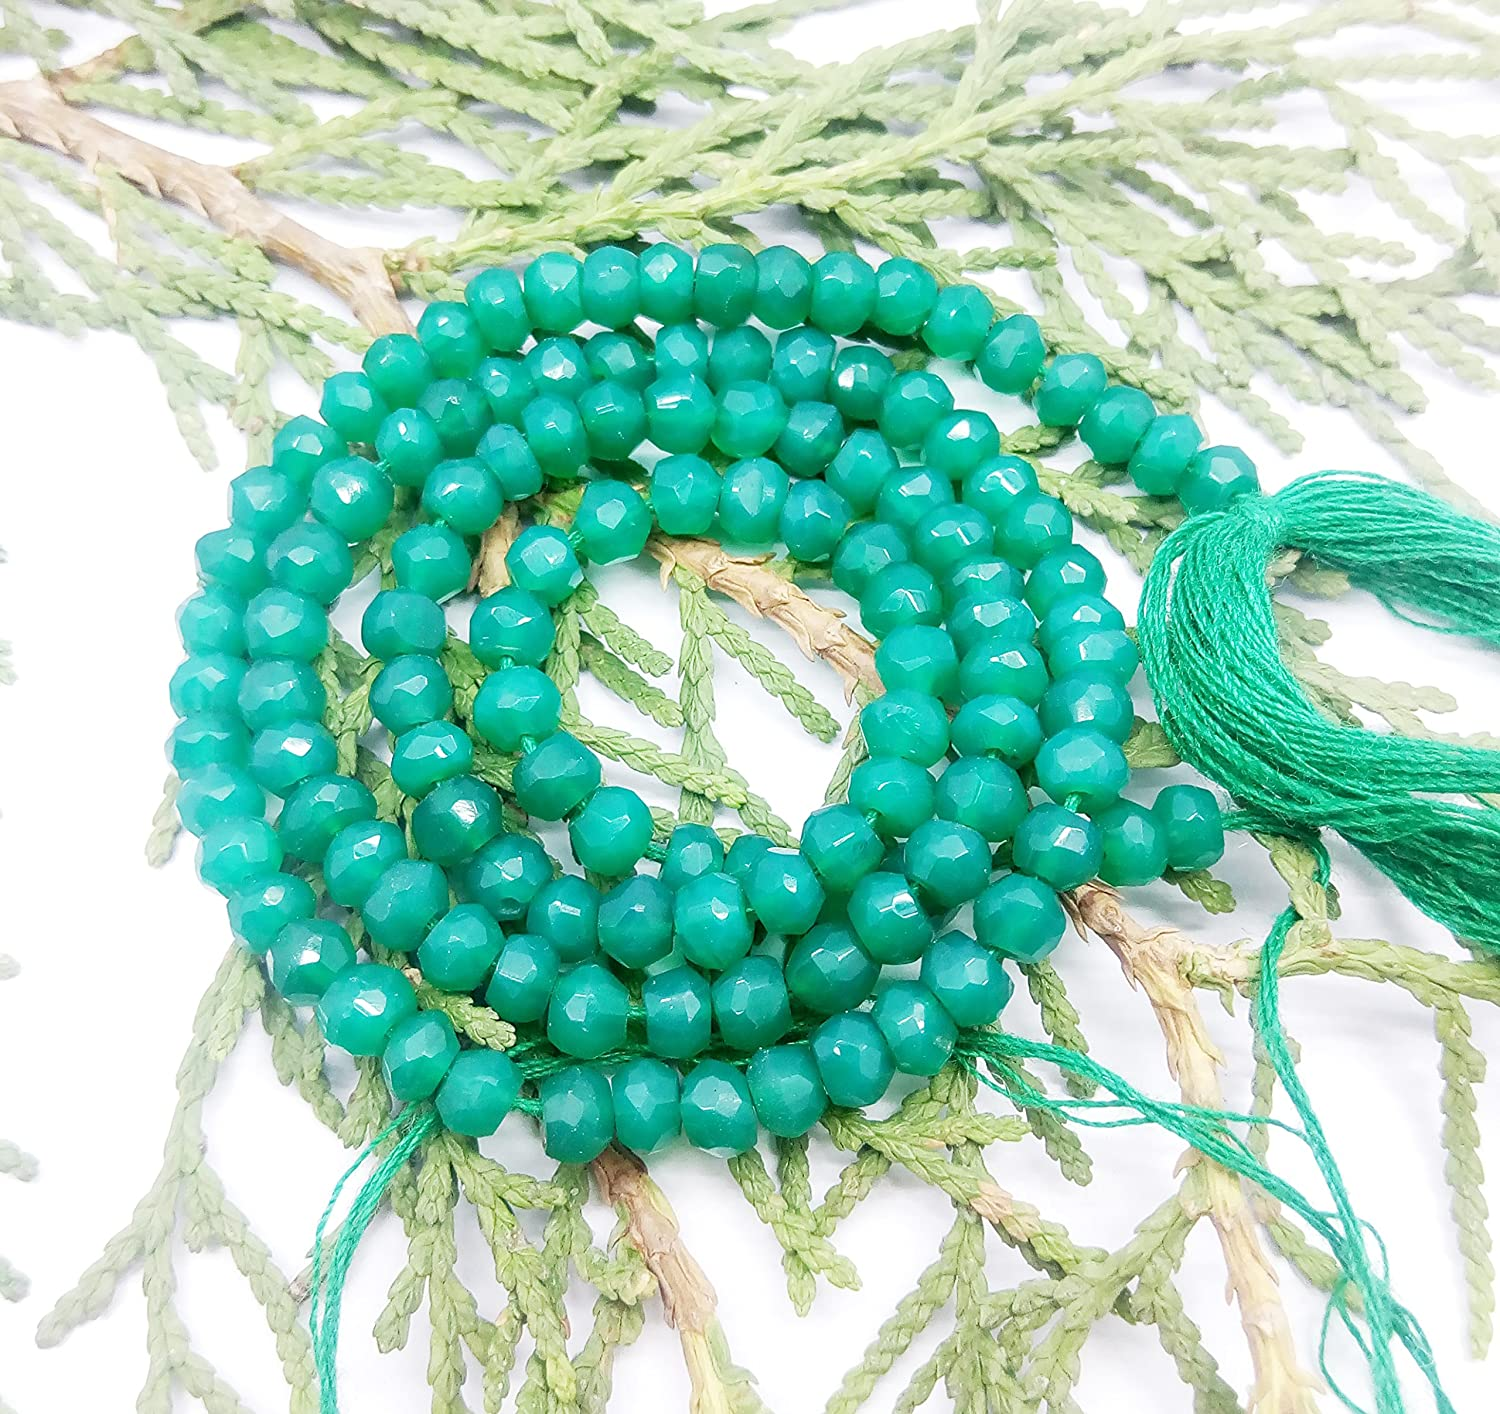 Doo offer Sell on 2 Strand Green Onyx Size in 4 mm, Shape of Rondelle & Faceted for All Type Persons Powered By GEM MART U.S.A.